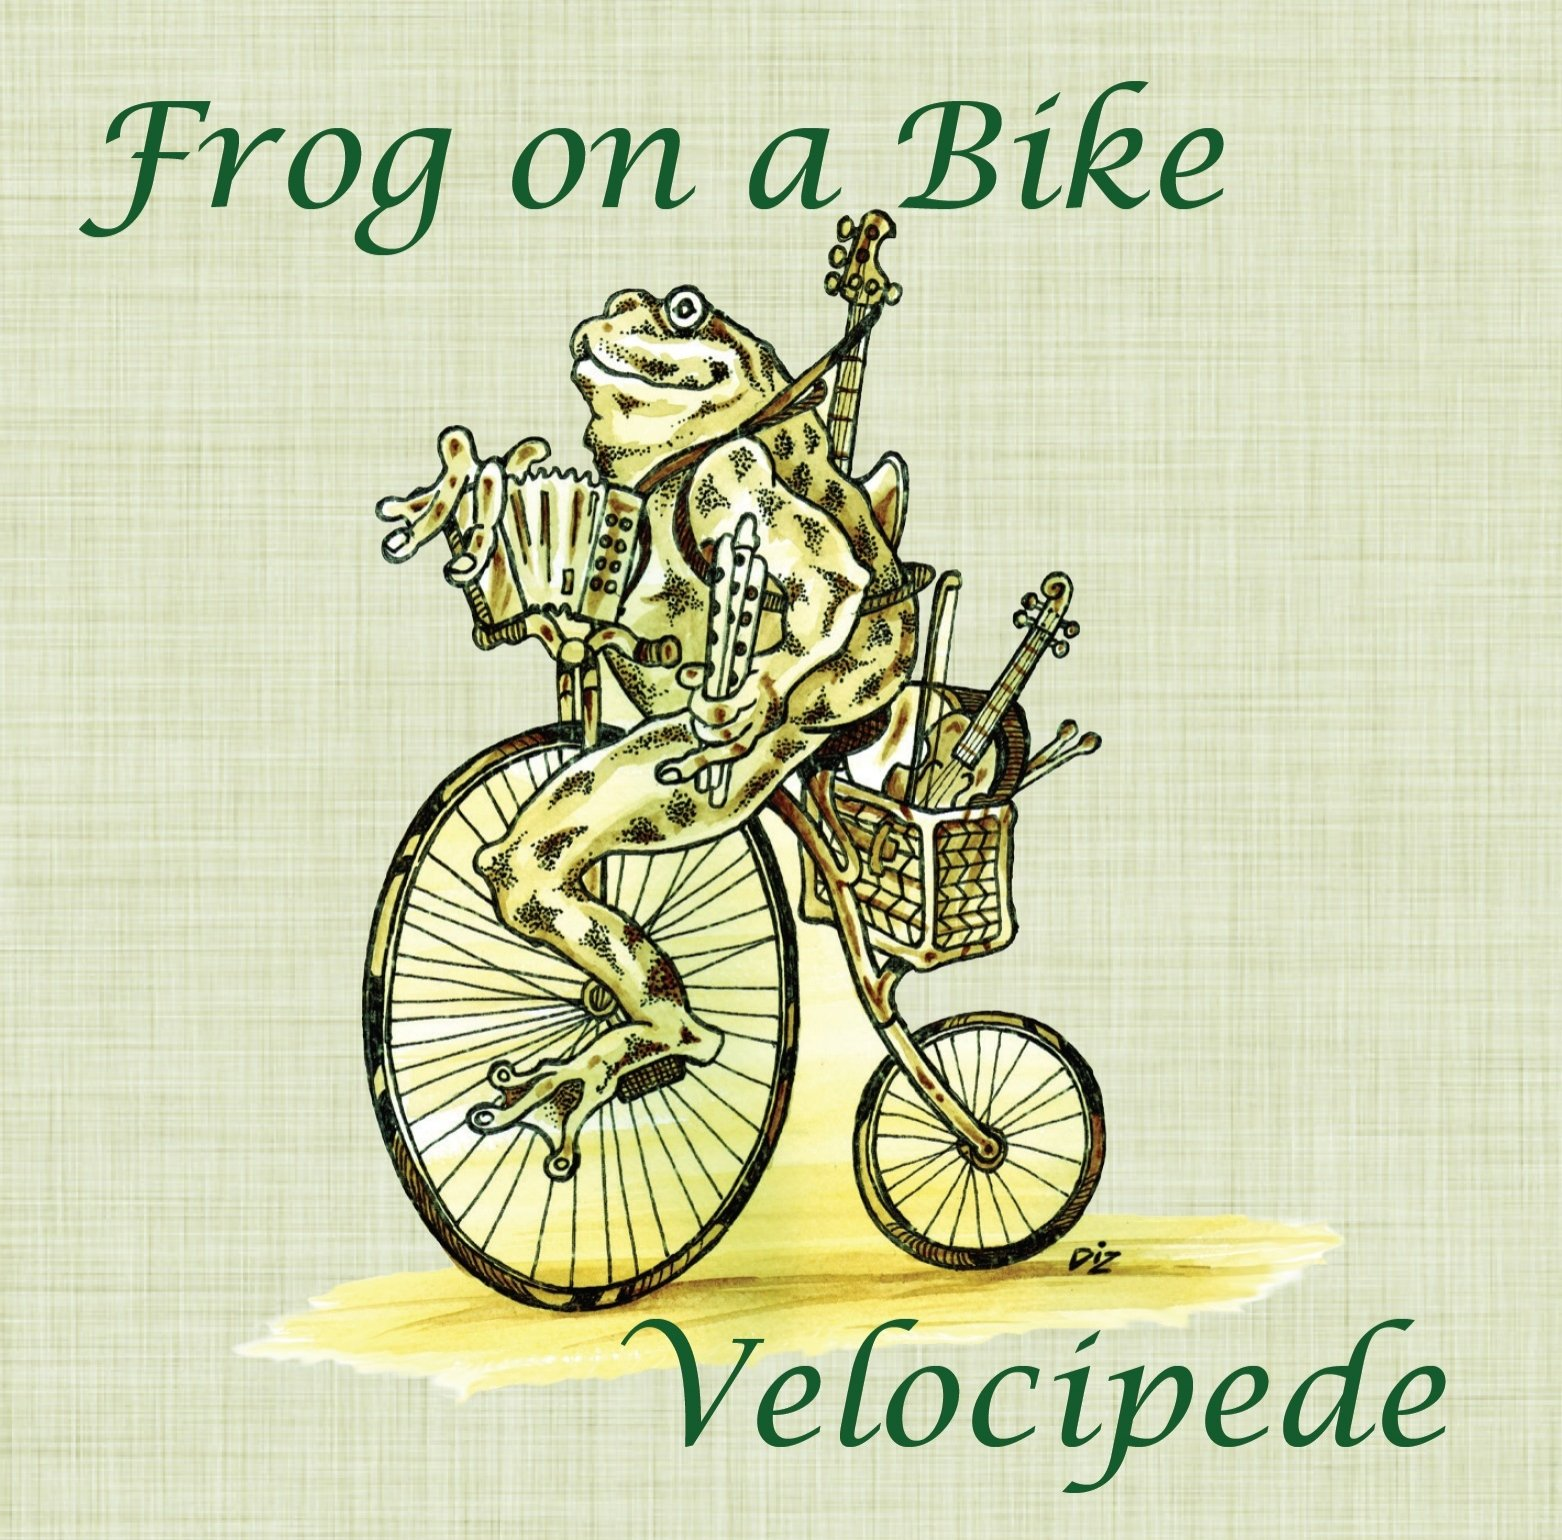 Velocipede Frog on a bike ceilidh band